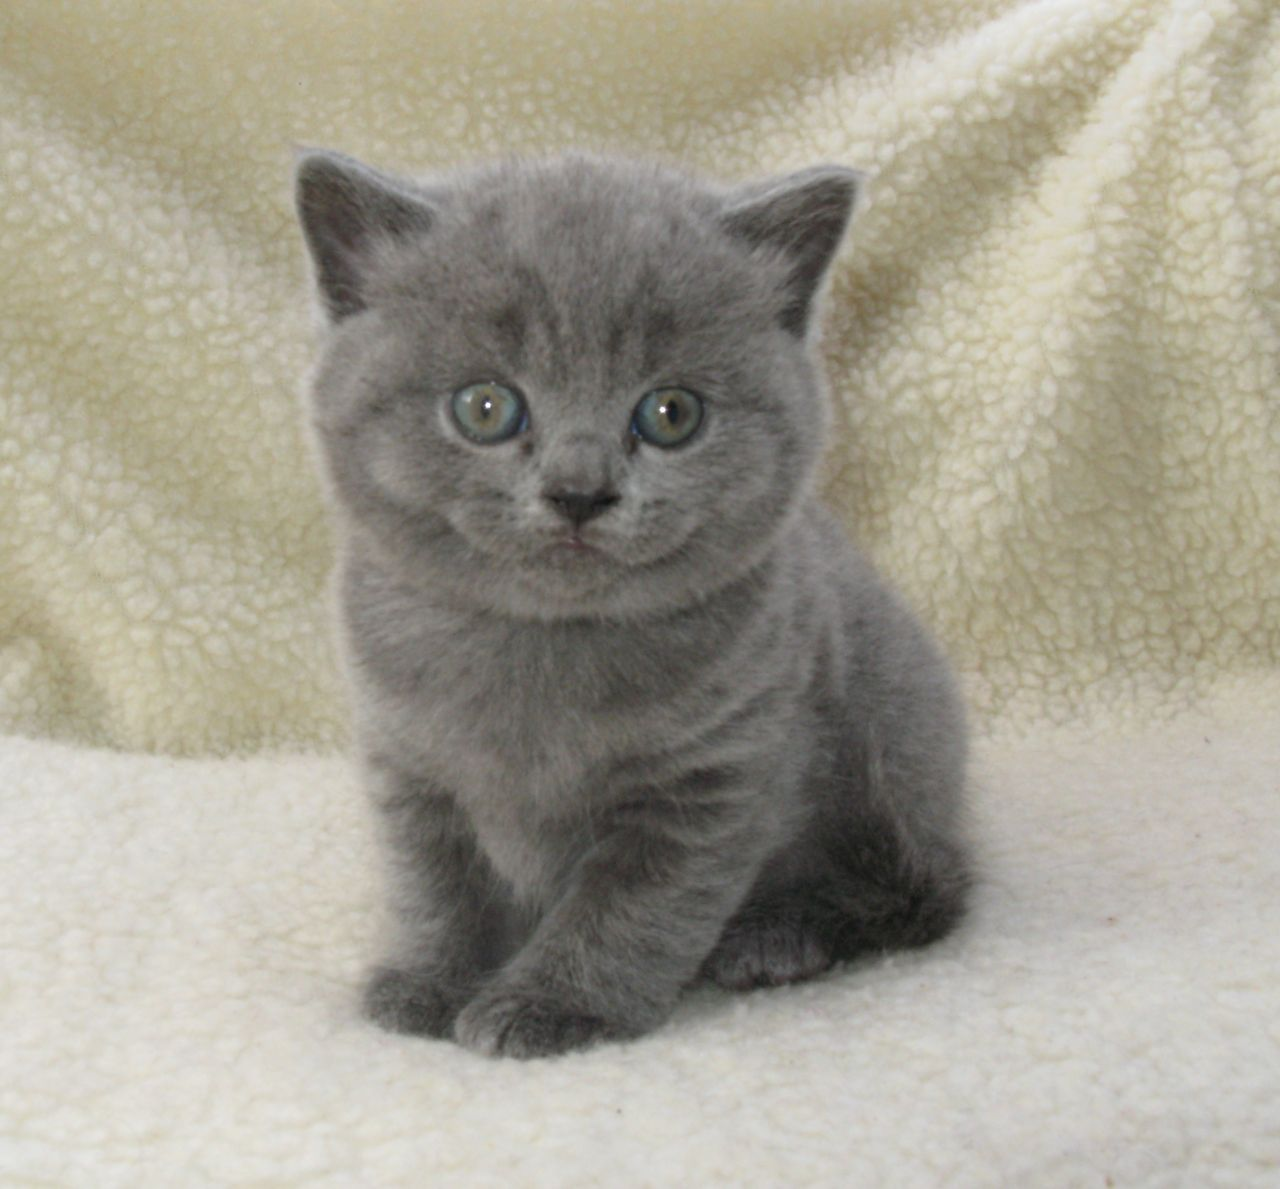 Pin By 𝔠𝔦𝔞𝔯𝔞 On Cats 3 British Shorthair Kittens British Shorthair Kitten For Sale